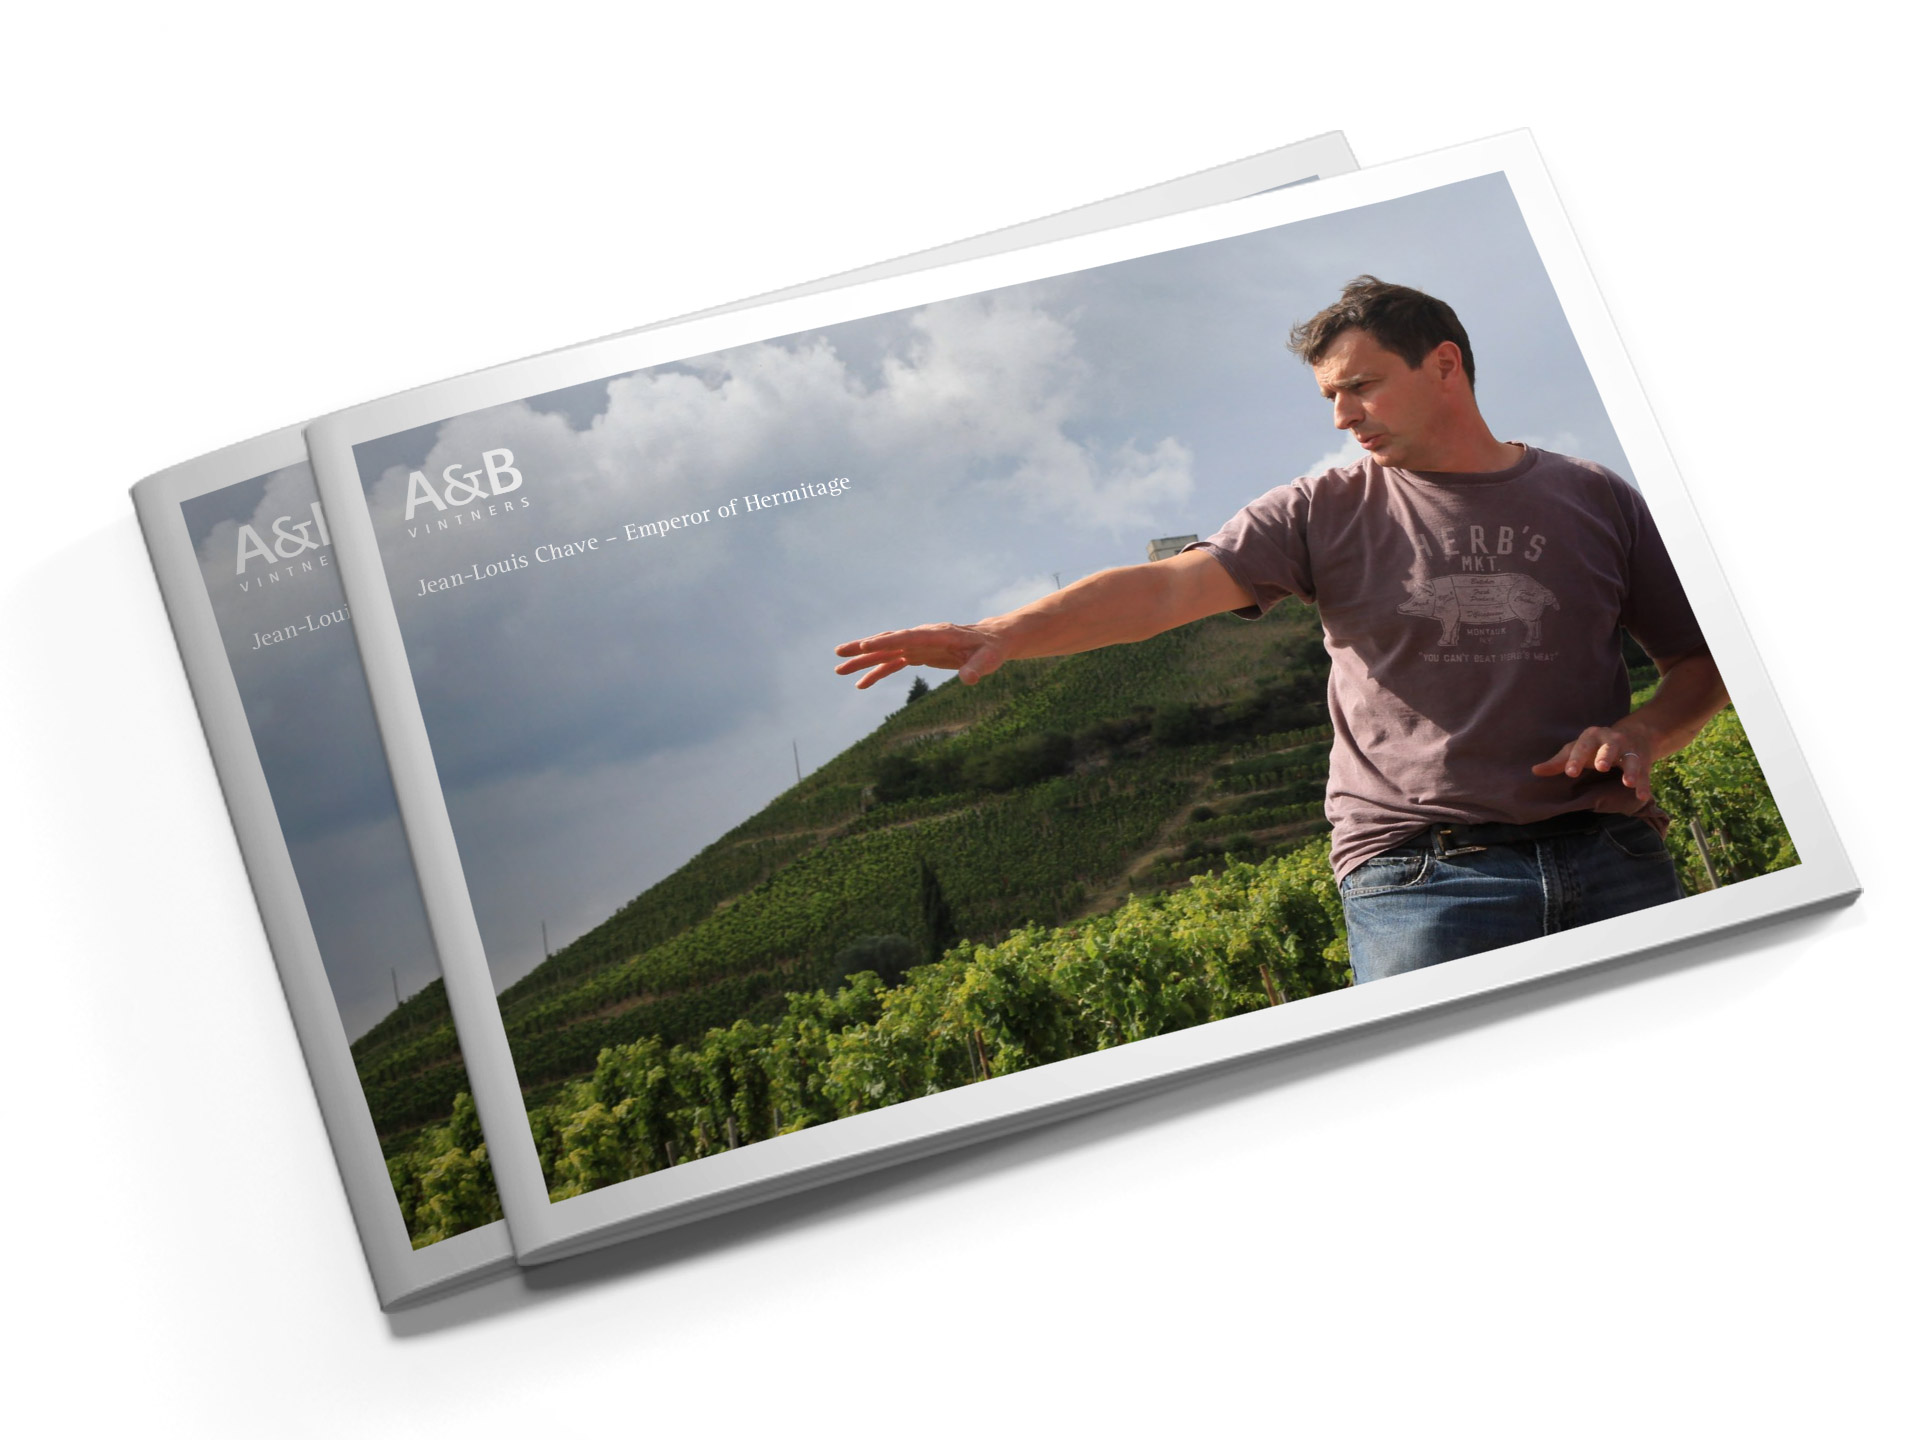 Brochure design for AB Vintners J-L Chave